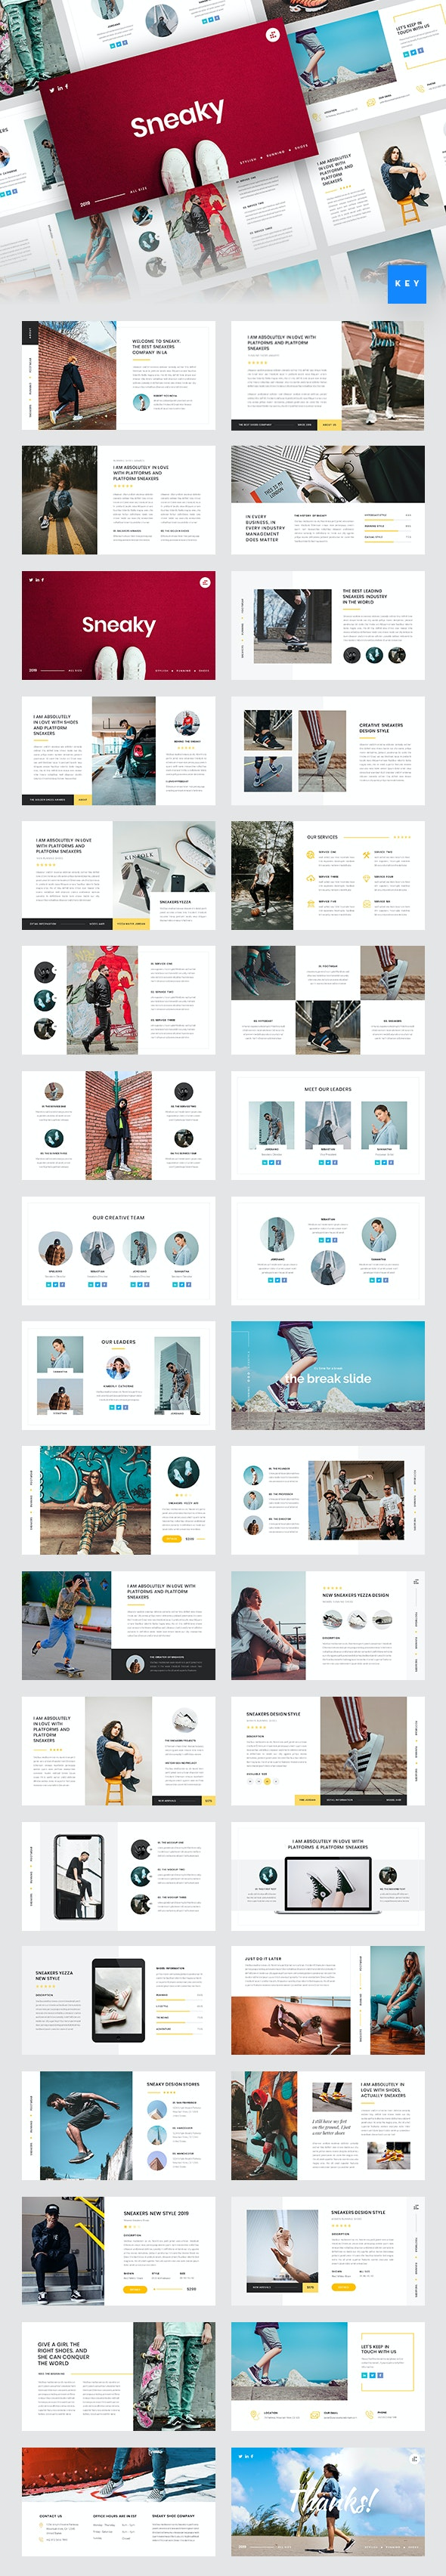 Sneaky - Sneakers Keynote Template - Creative Keynote Templates